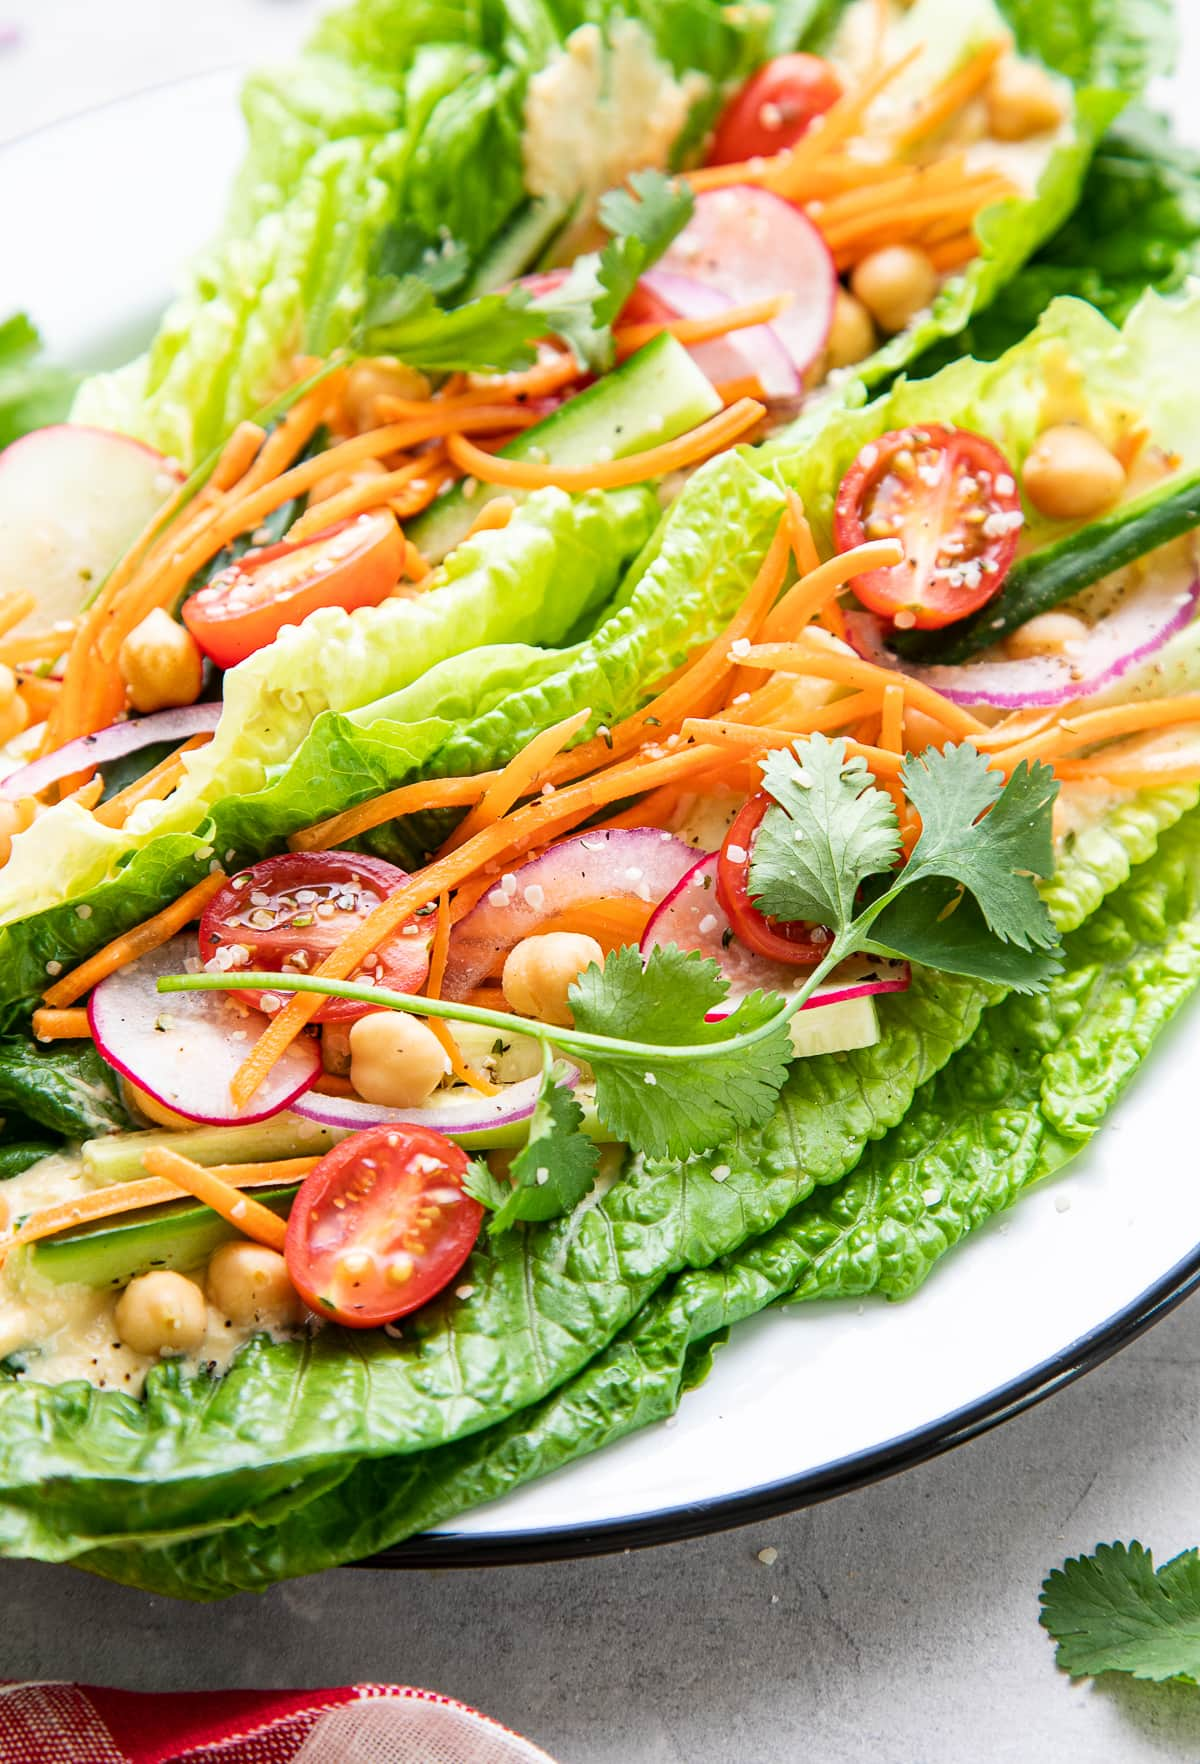 side angle view of light and healthy, fresh vegan lettuce wraps on a plate.